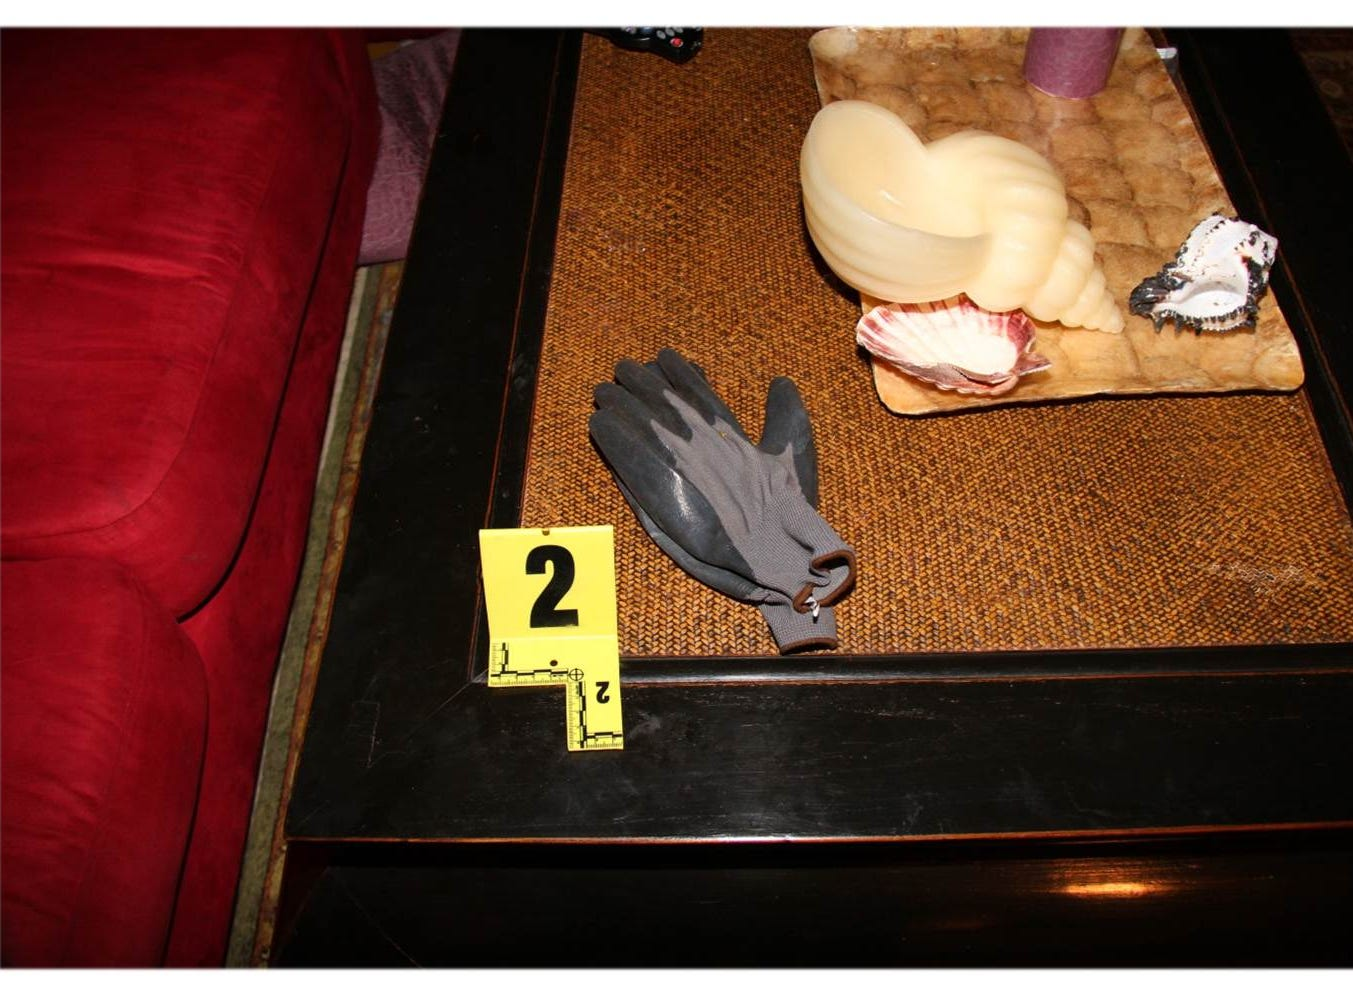 An evidence marker points to a pair of gloves sitting on a piece of furniture.